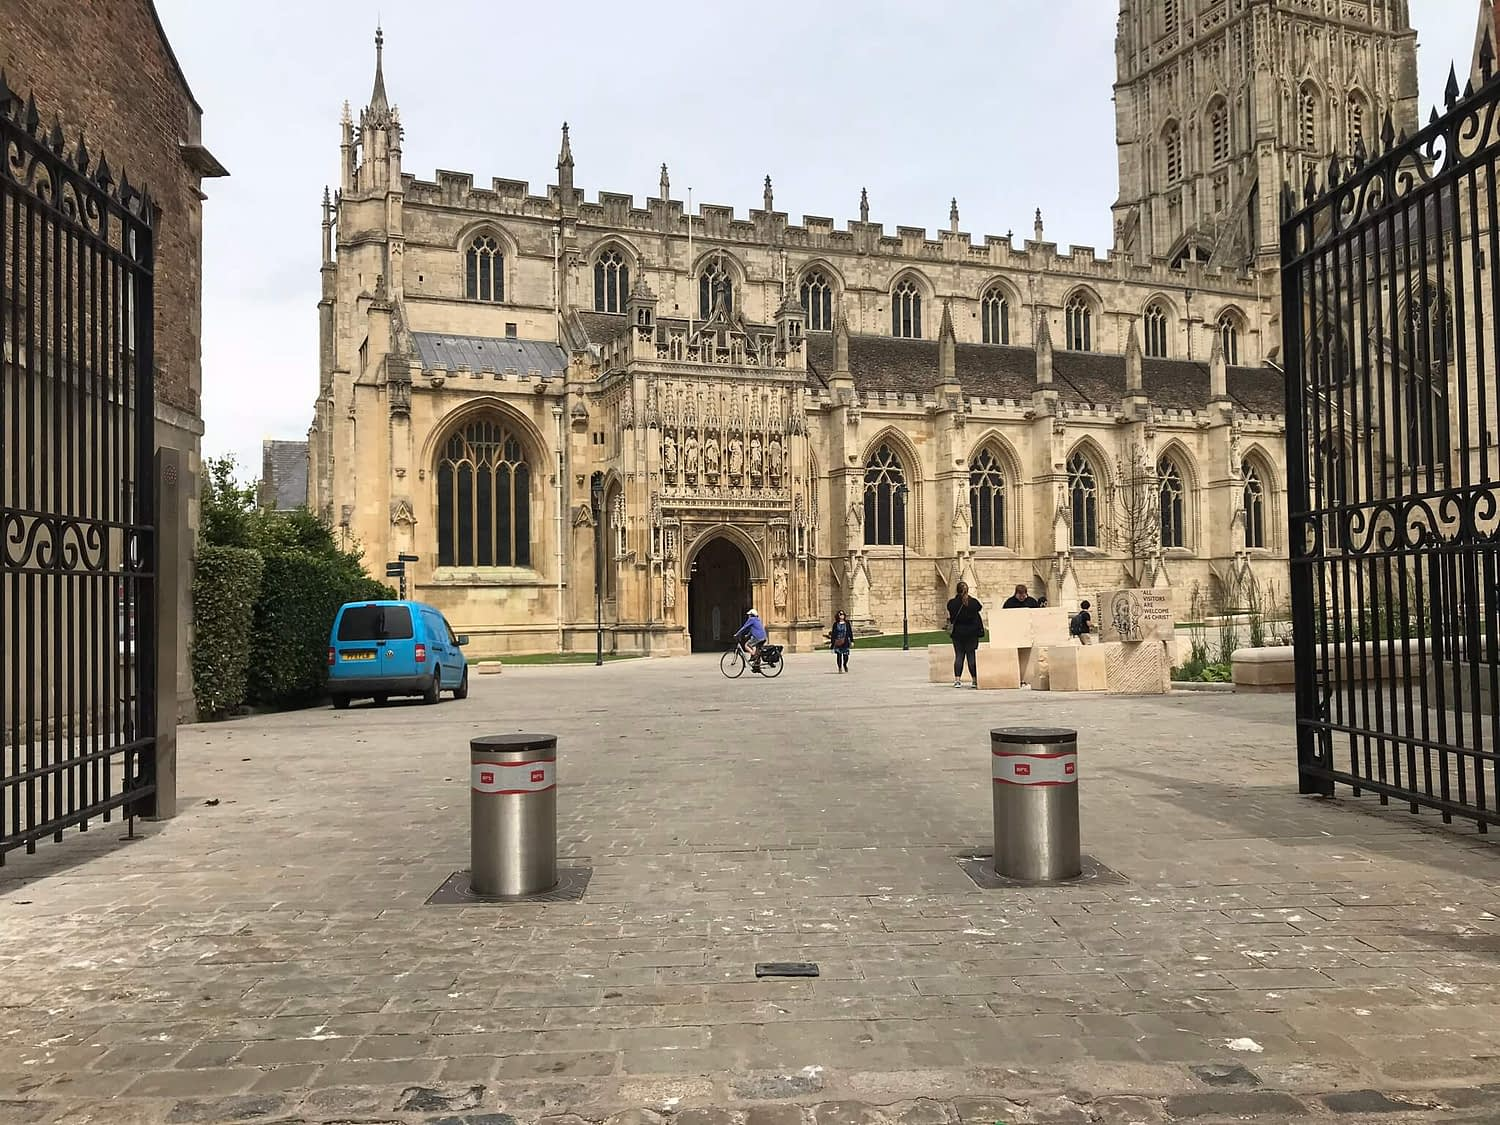 BFT AUTOMATED SECURITY BOLLARDS INSTALLED AT GLOUCESTER CATHEDRAL MAINTAINED BY GATE GUYS